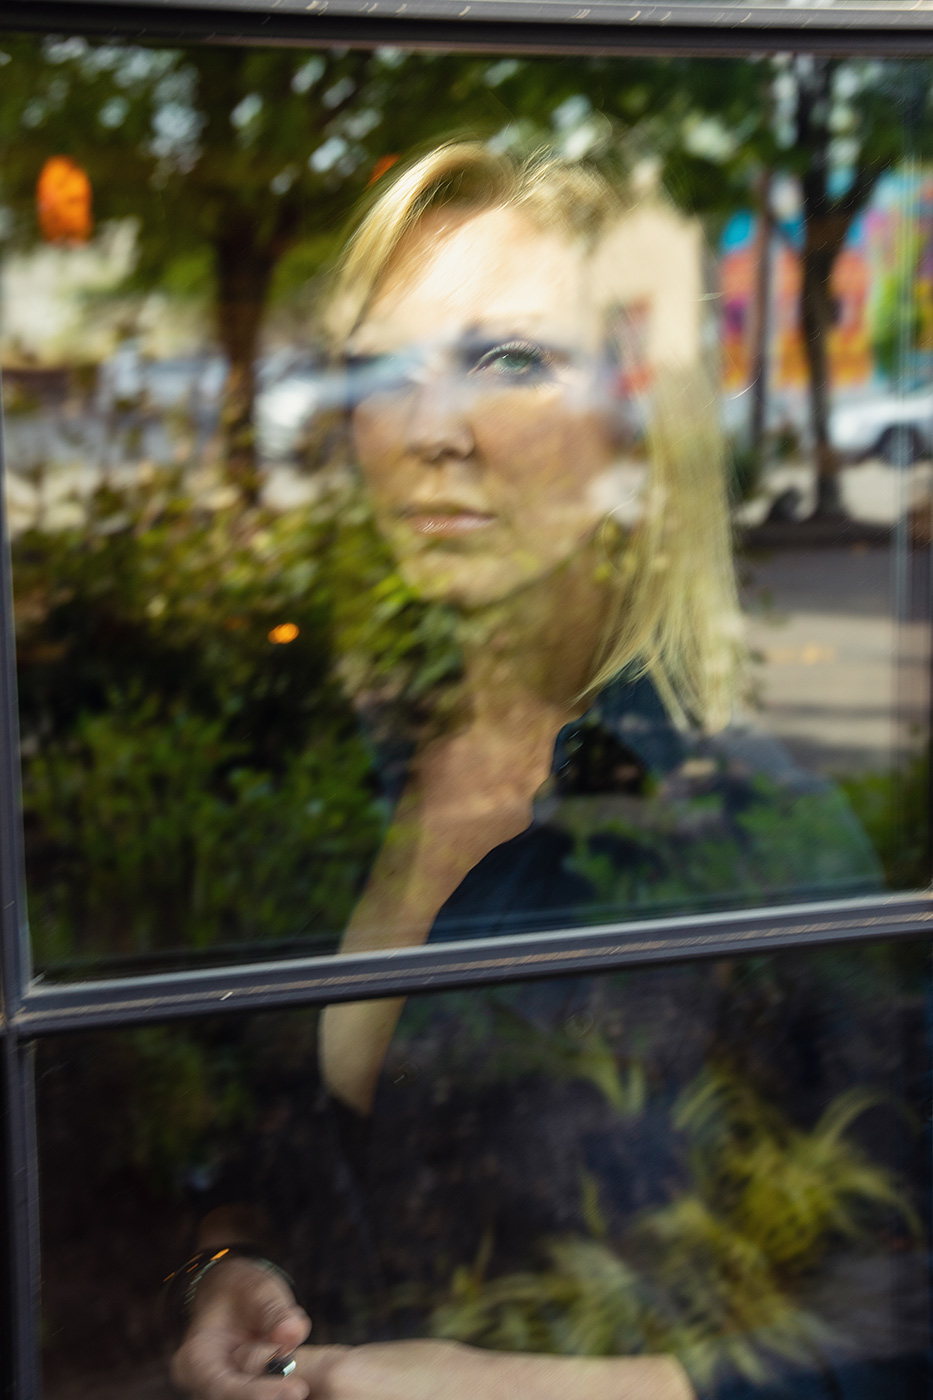 Editorial portrait of actress with window reflection of city street